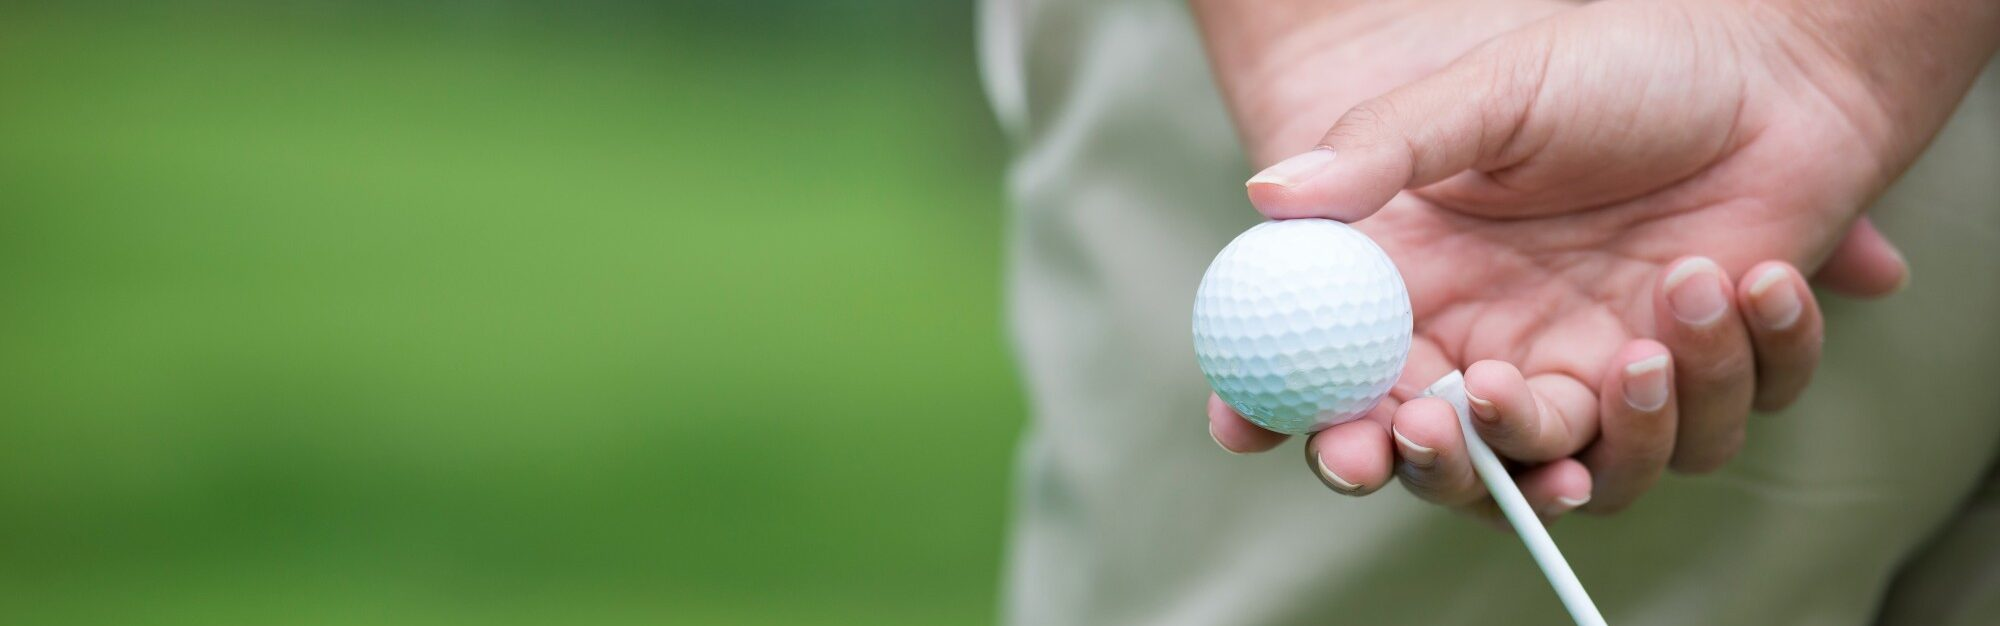 Tee time bookings vs roll-ups: The debate threatening to tear golf clubs apart